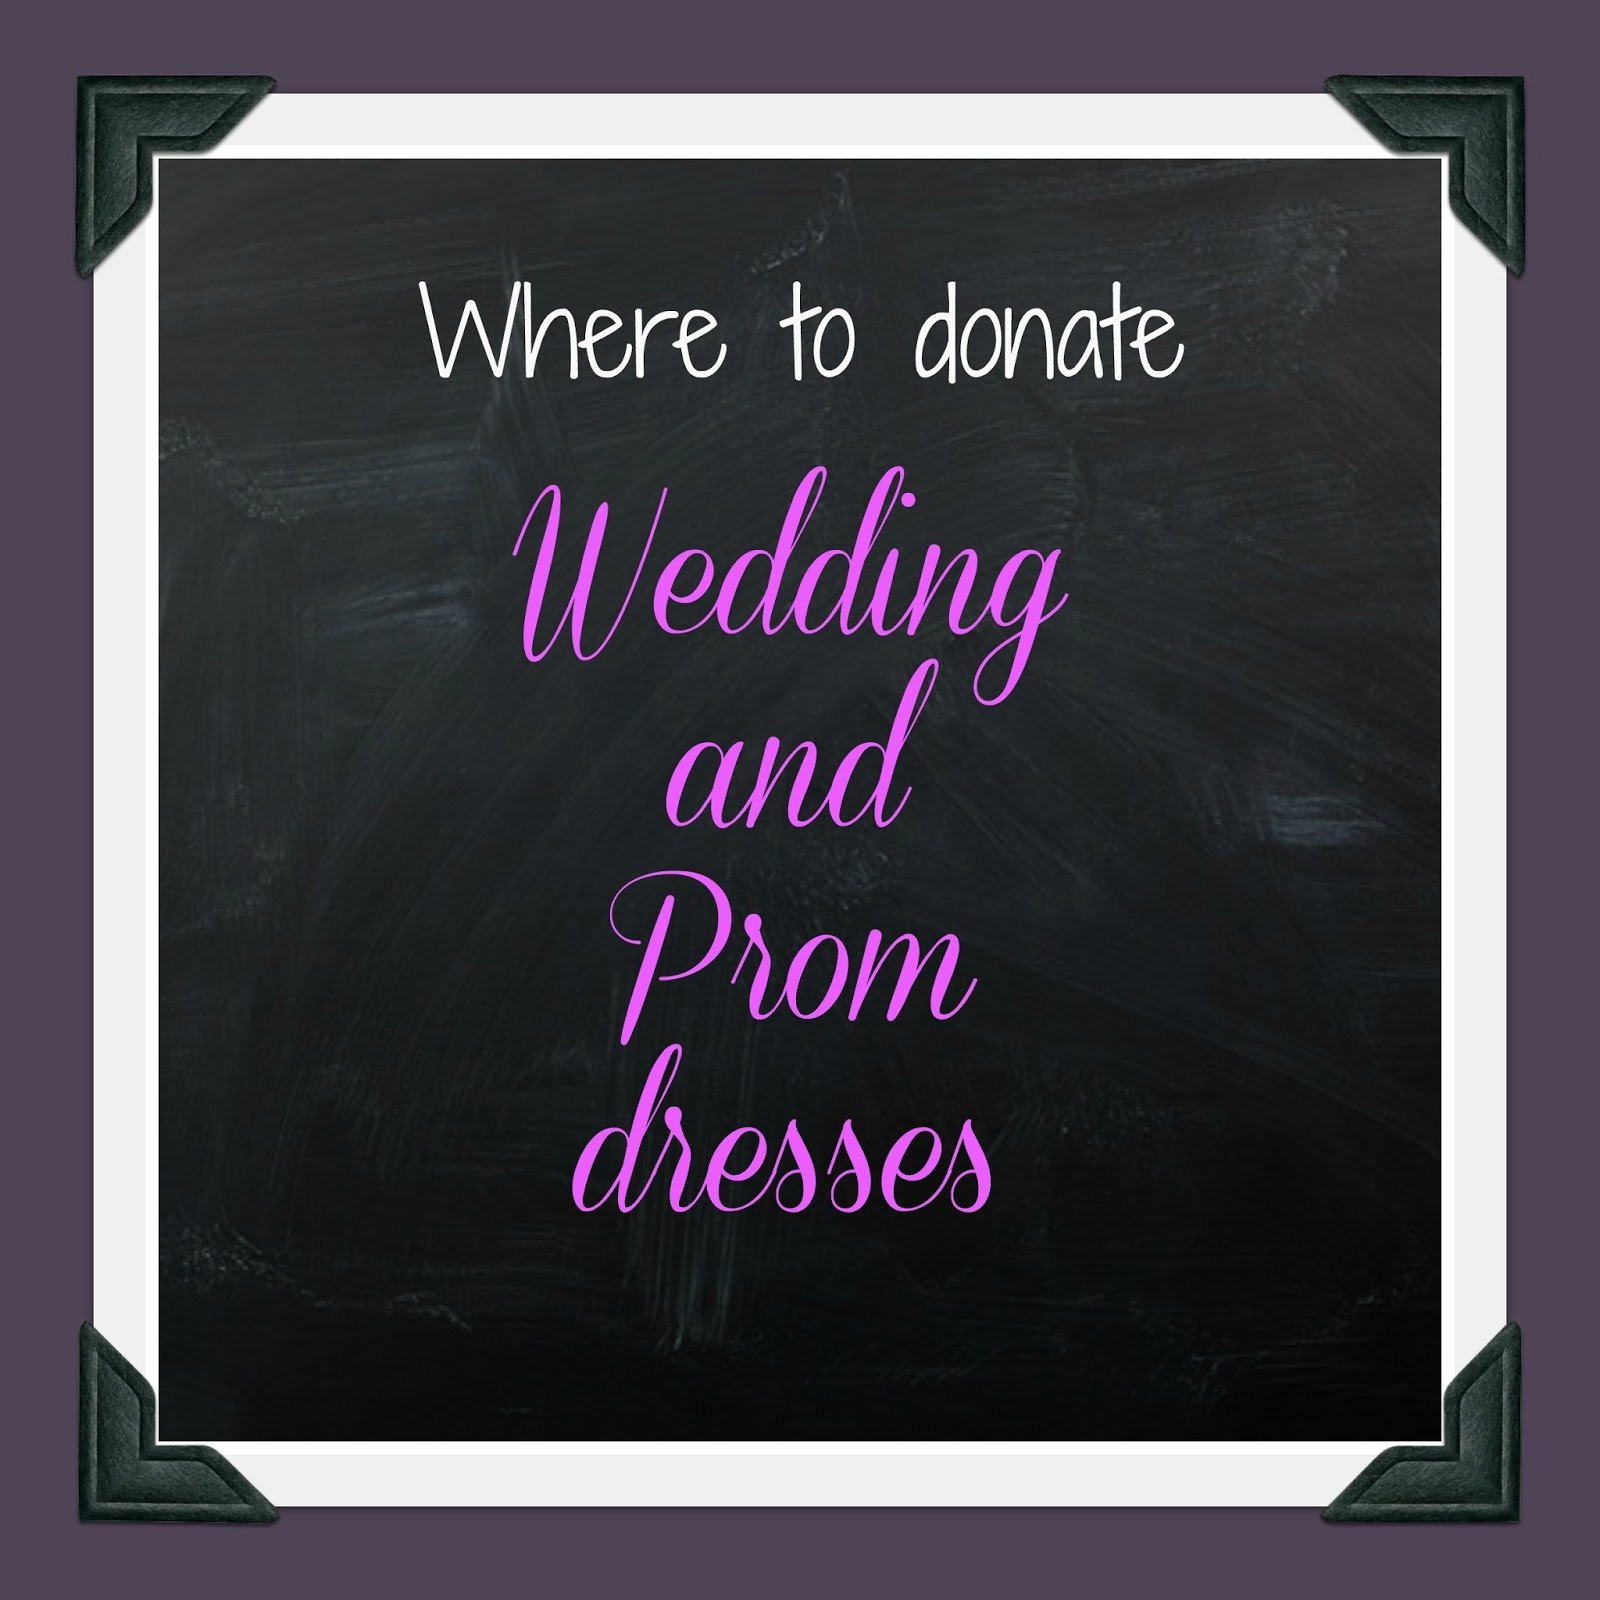 Donating Wedding Dresses